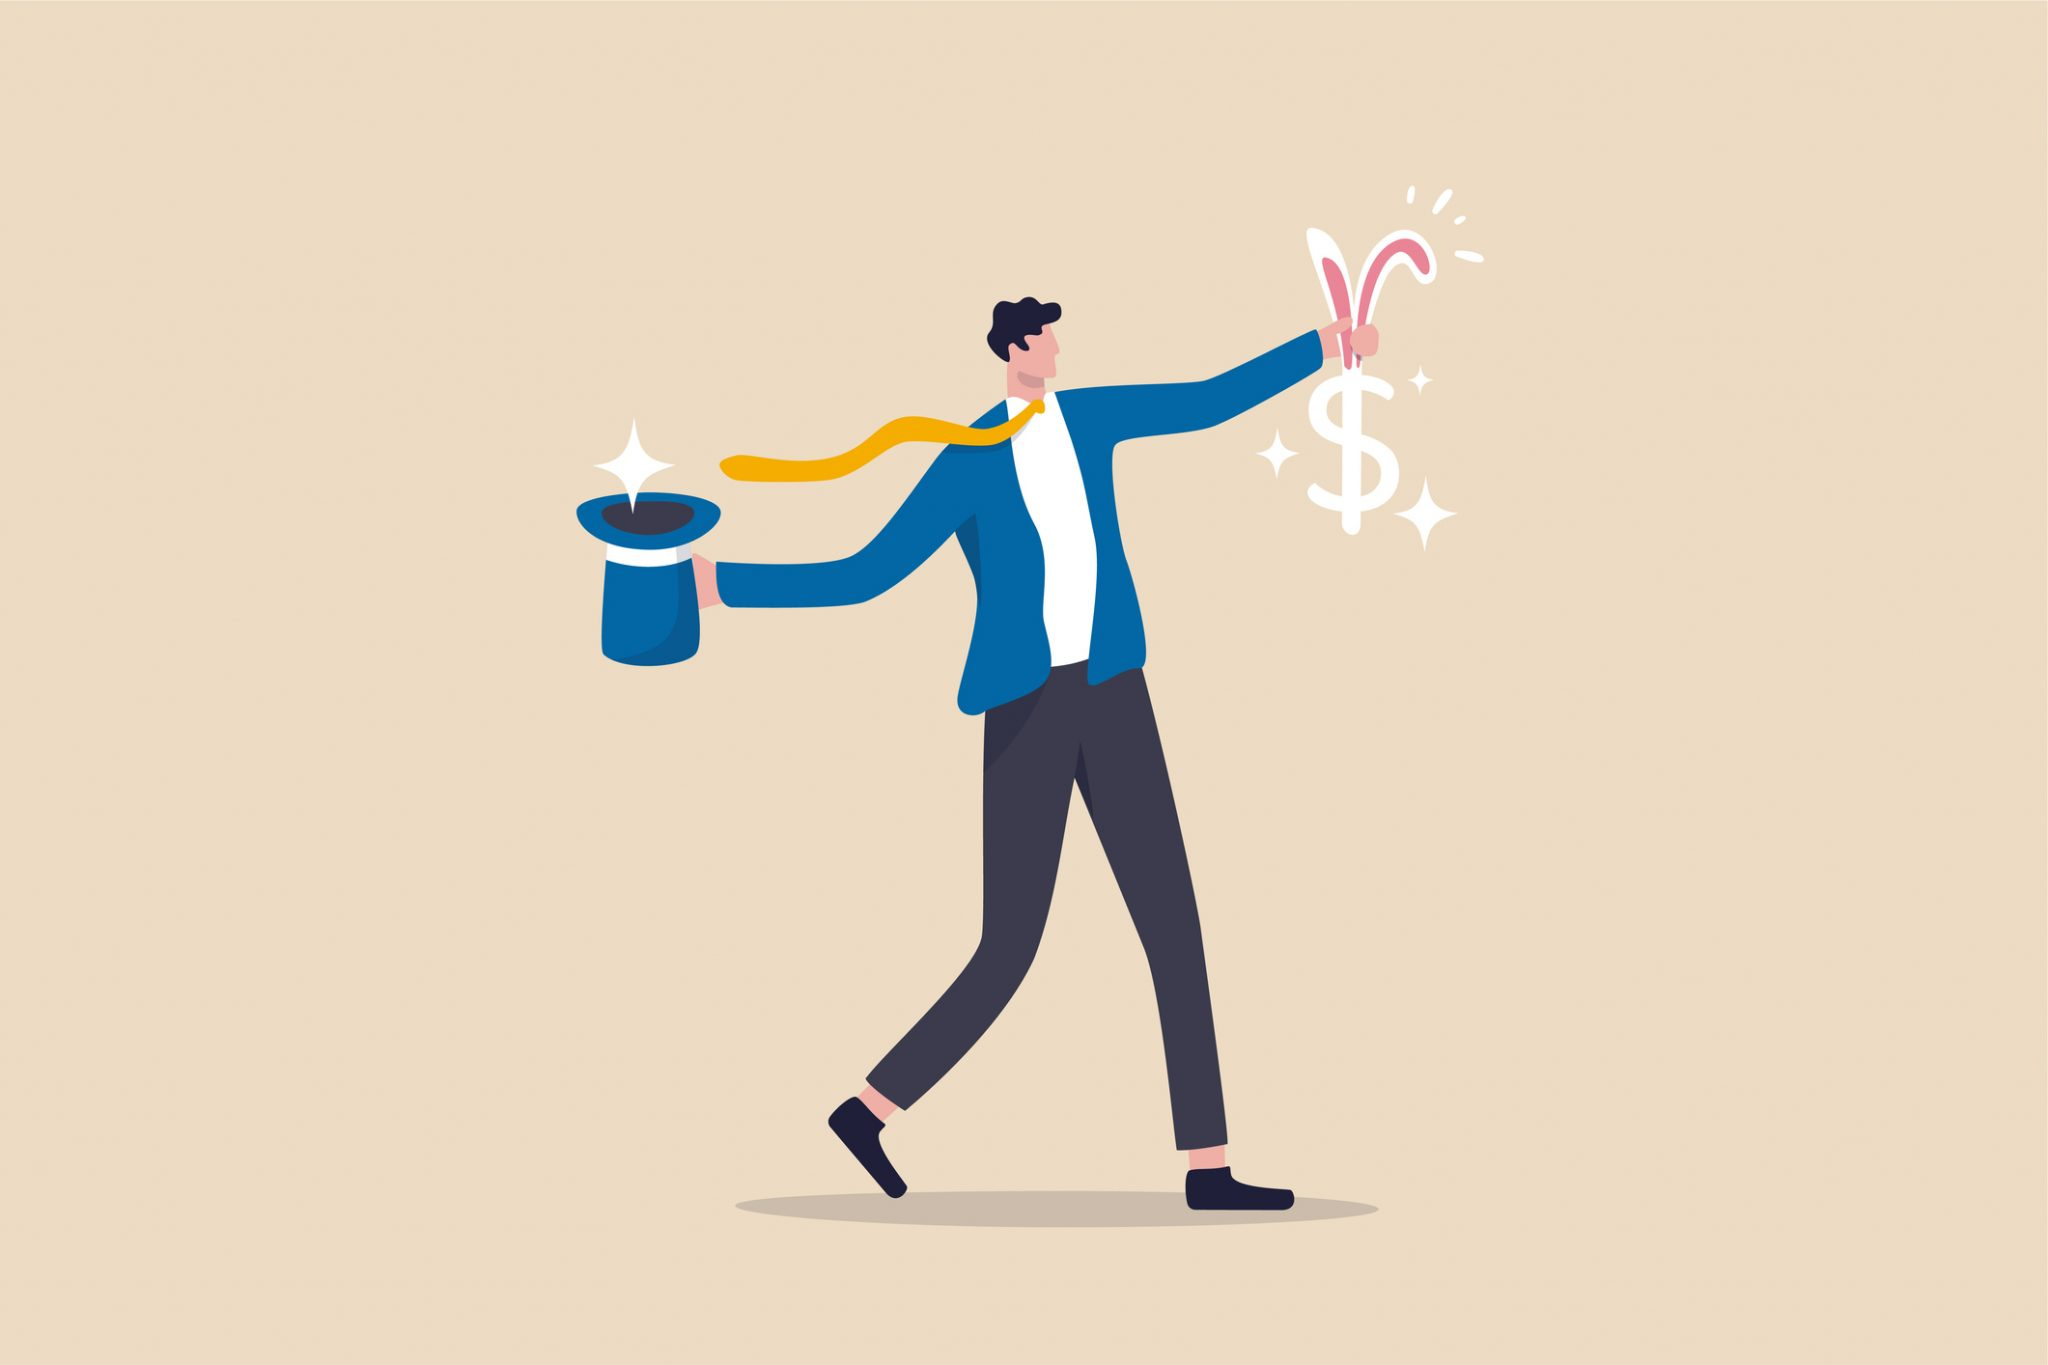 Illustration of man pulling dollar sign with rabbit ears out of top hat